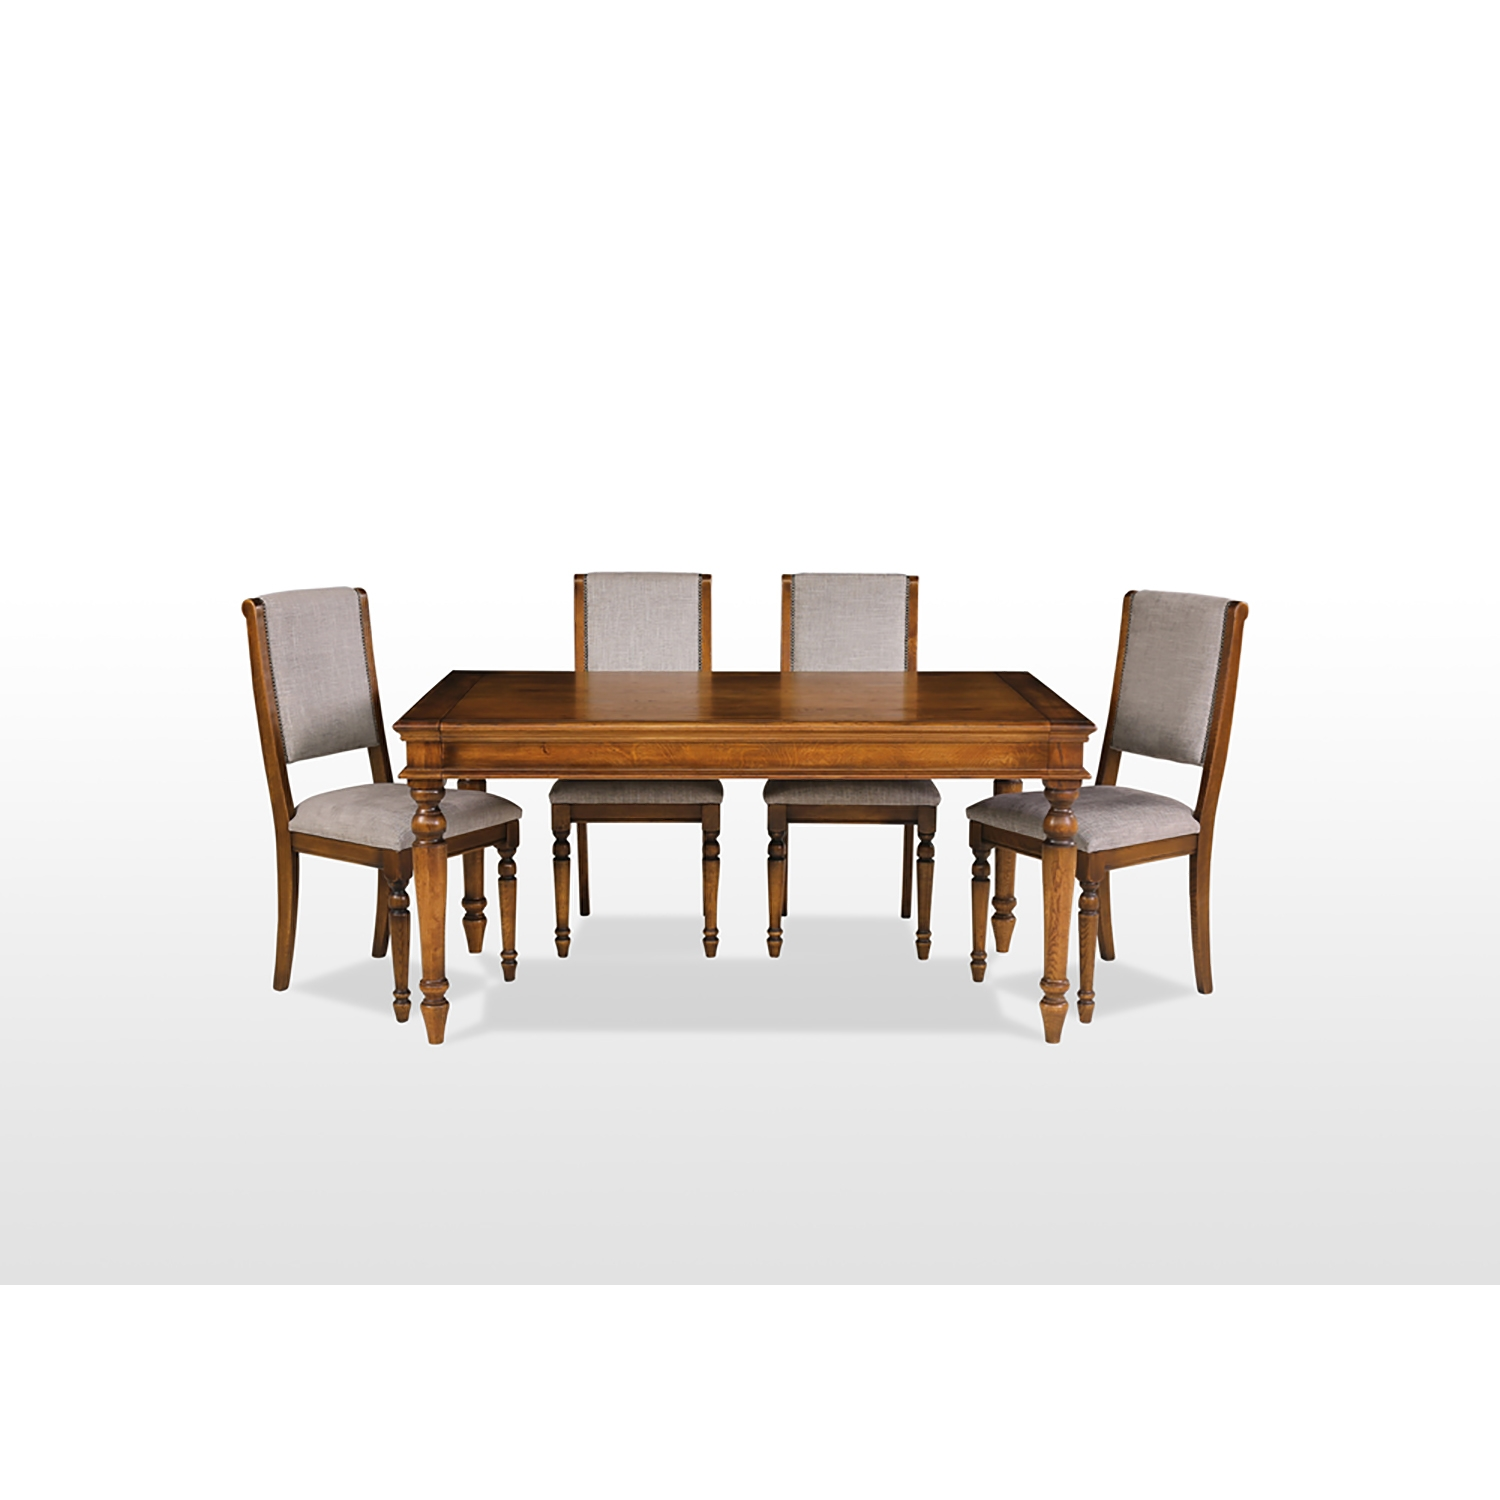 Image of Rochford Extending Table & 6 Chairs Dining Set